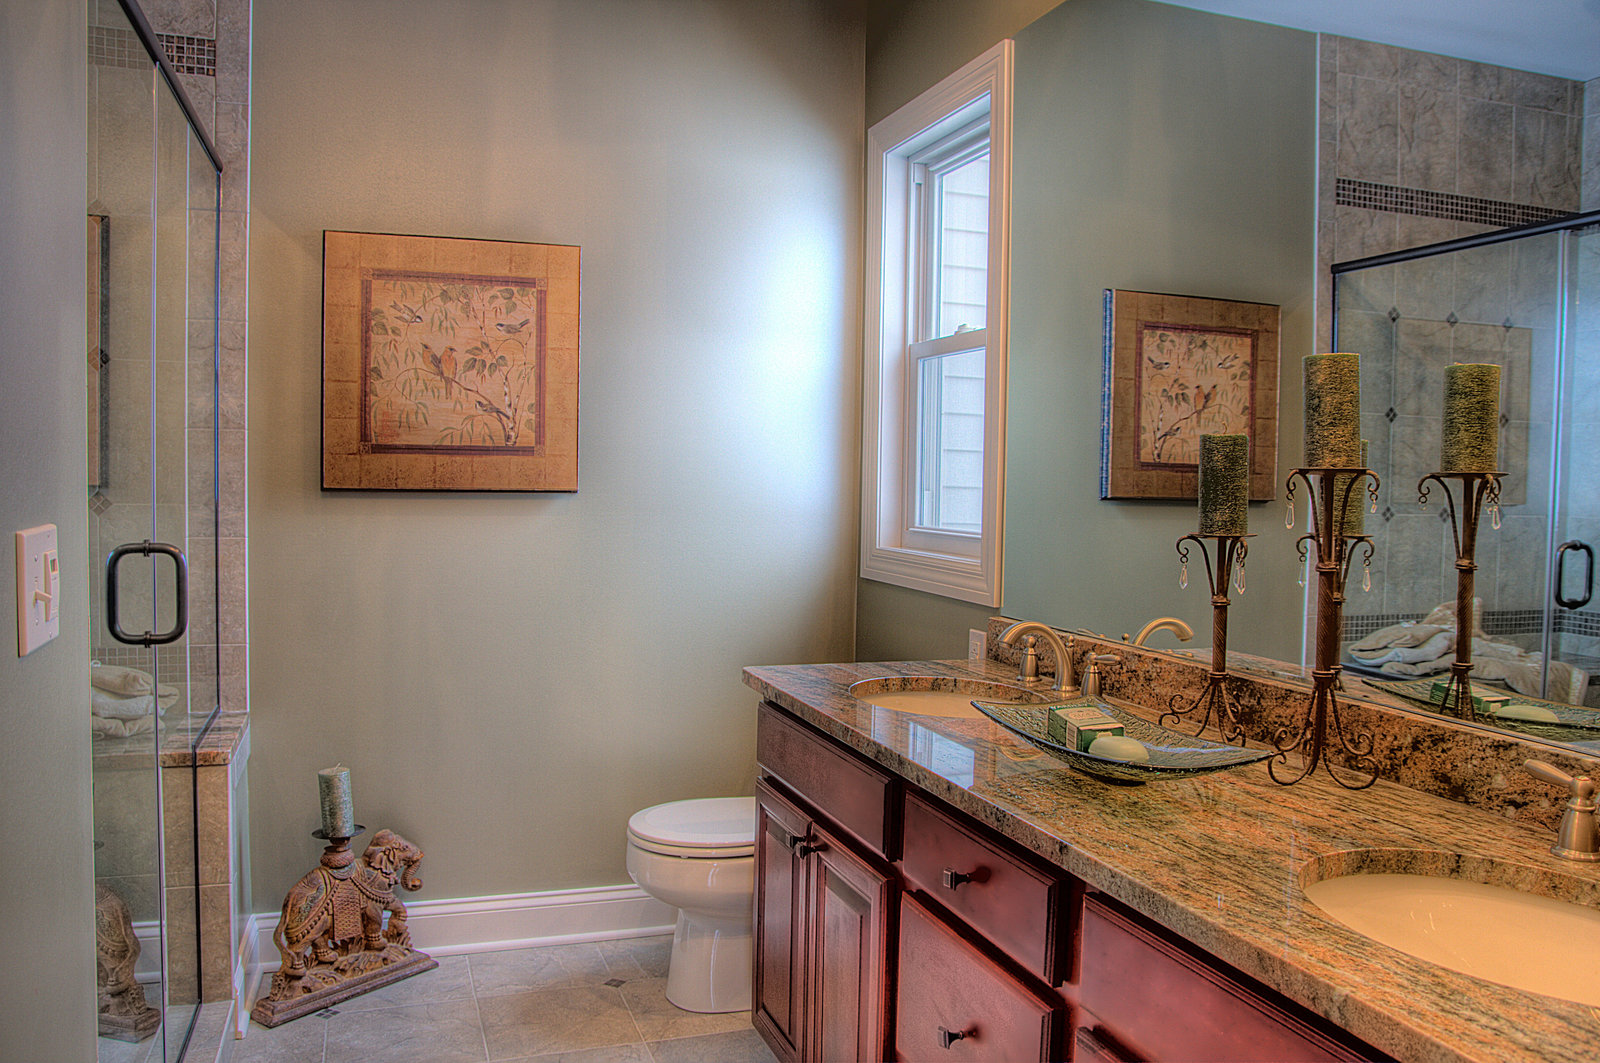 Real Estate Master Bathroom